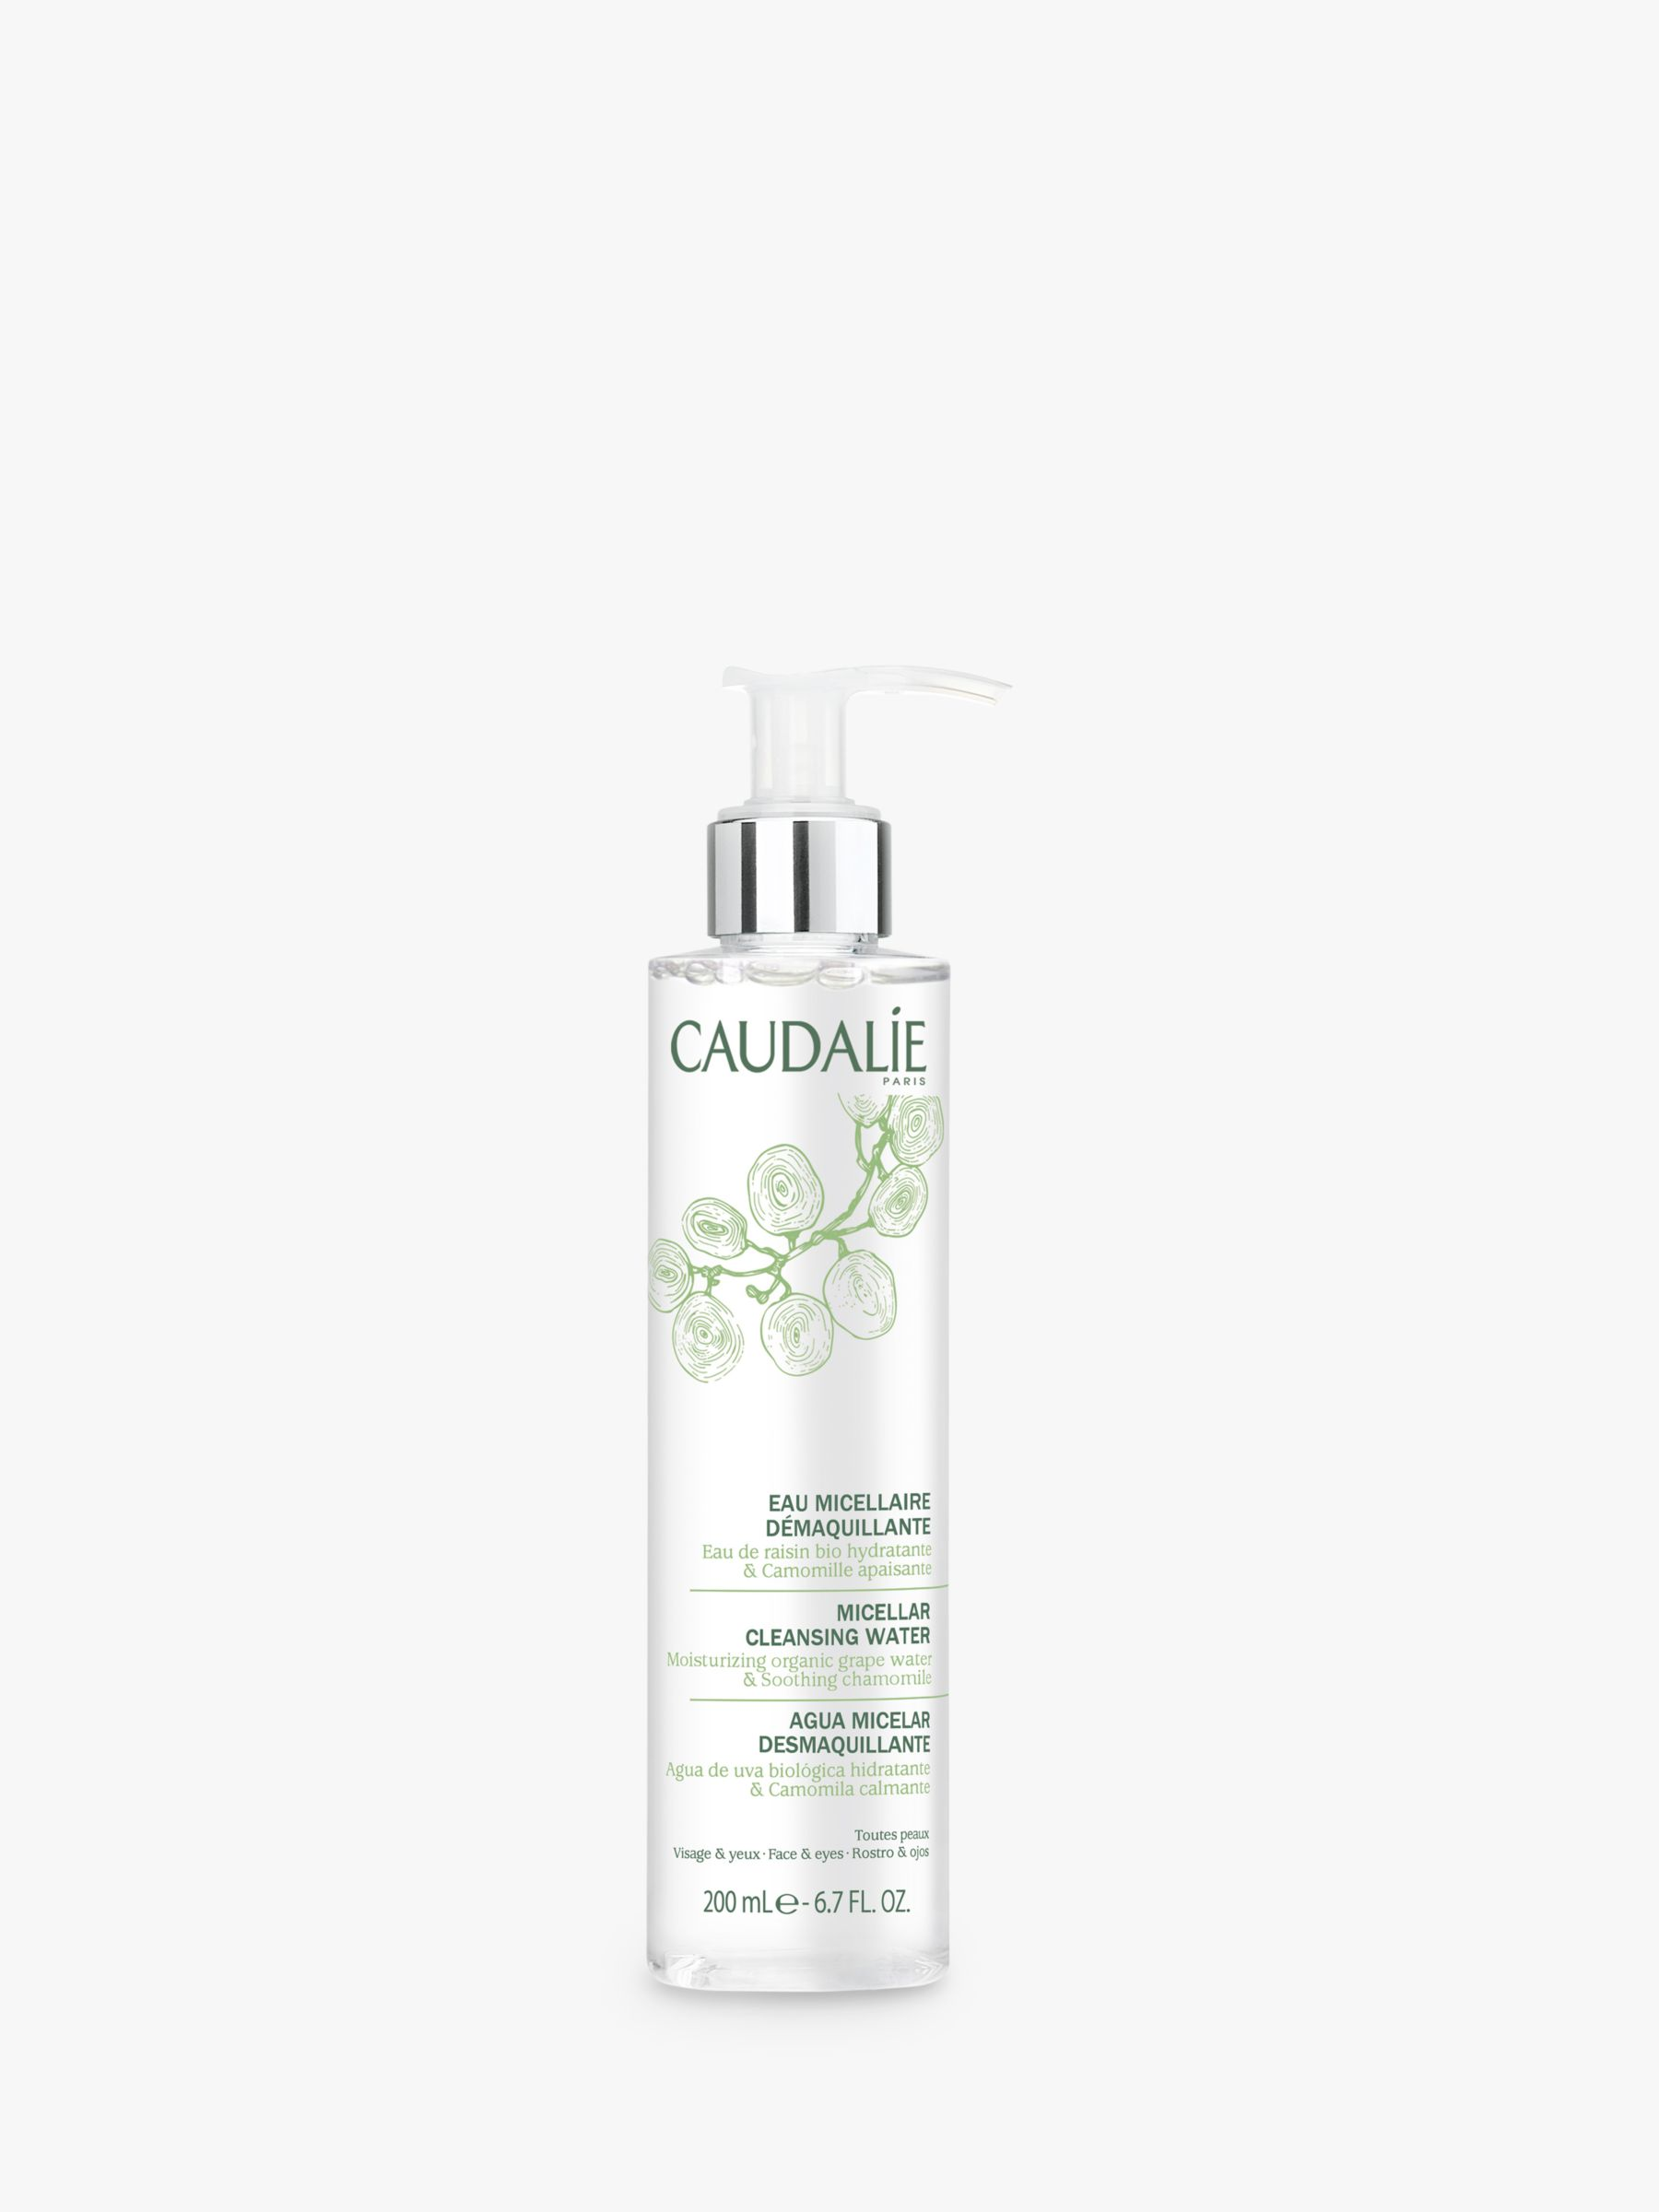 Caudalie Caudalie Micellar Cleansing Water, 200ml